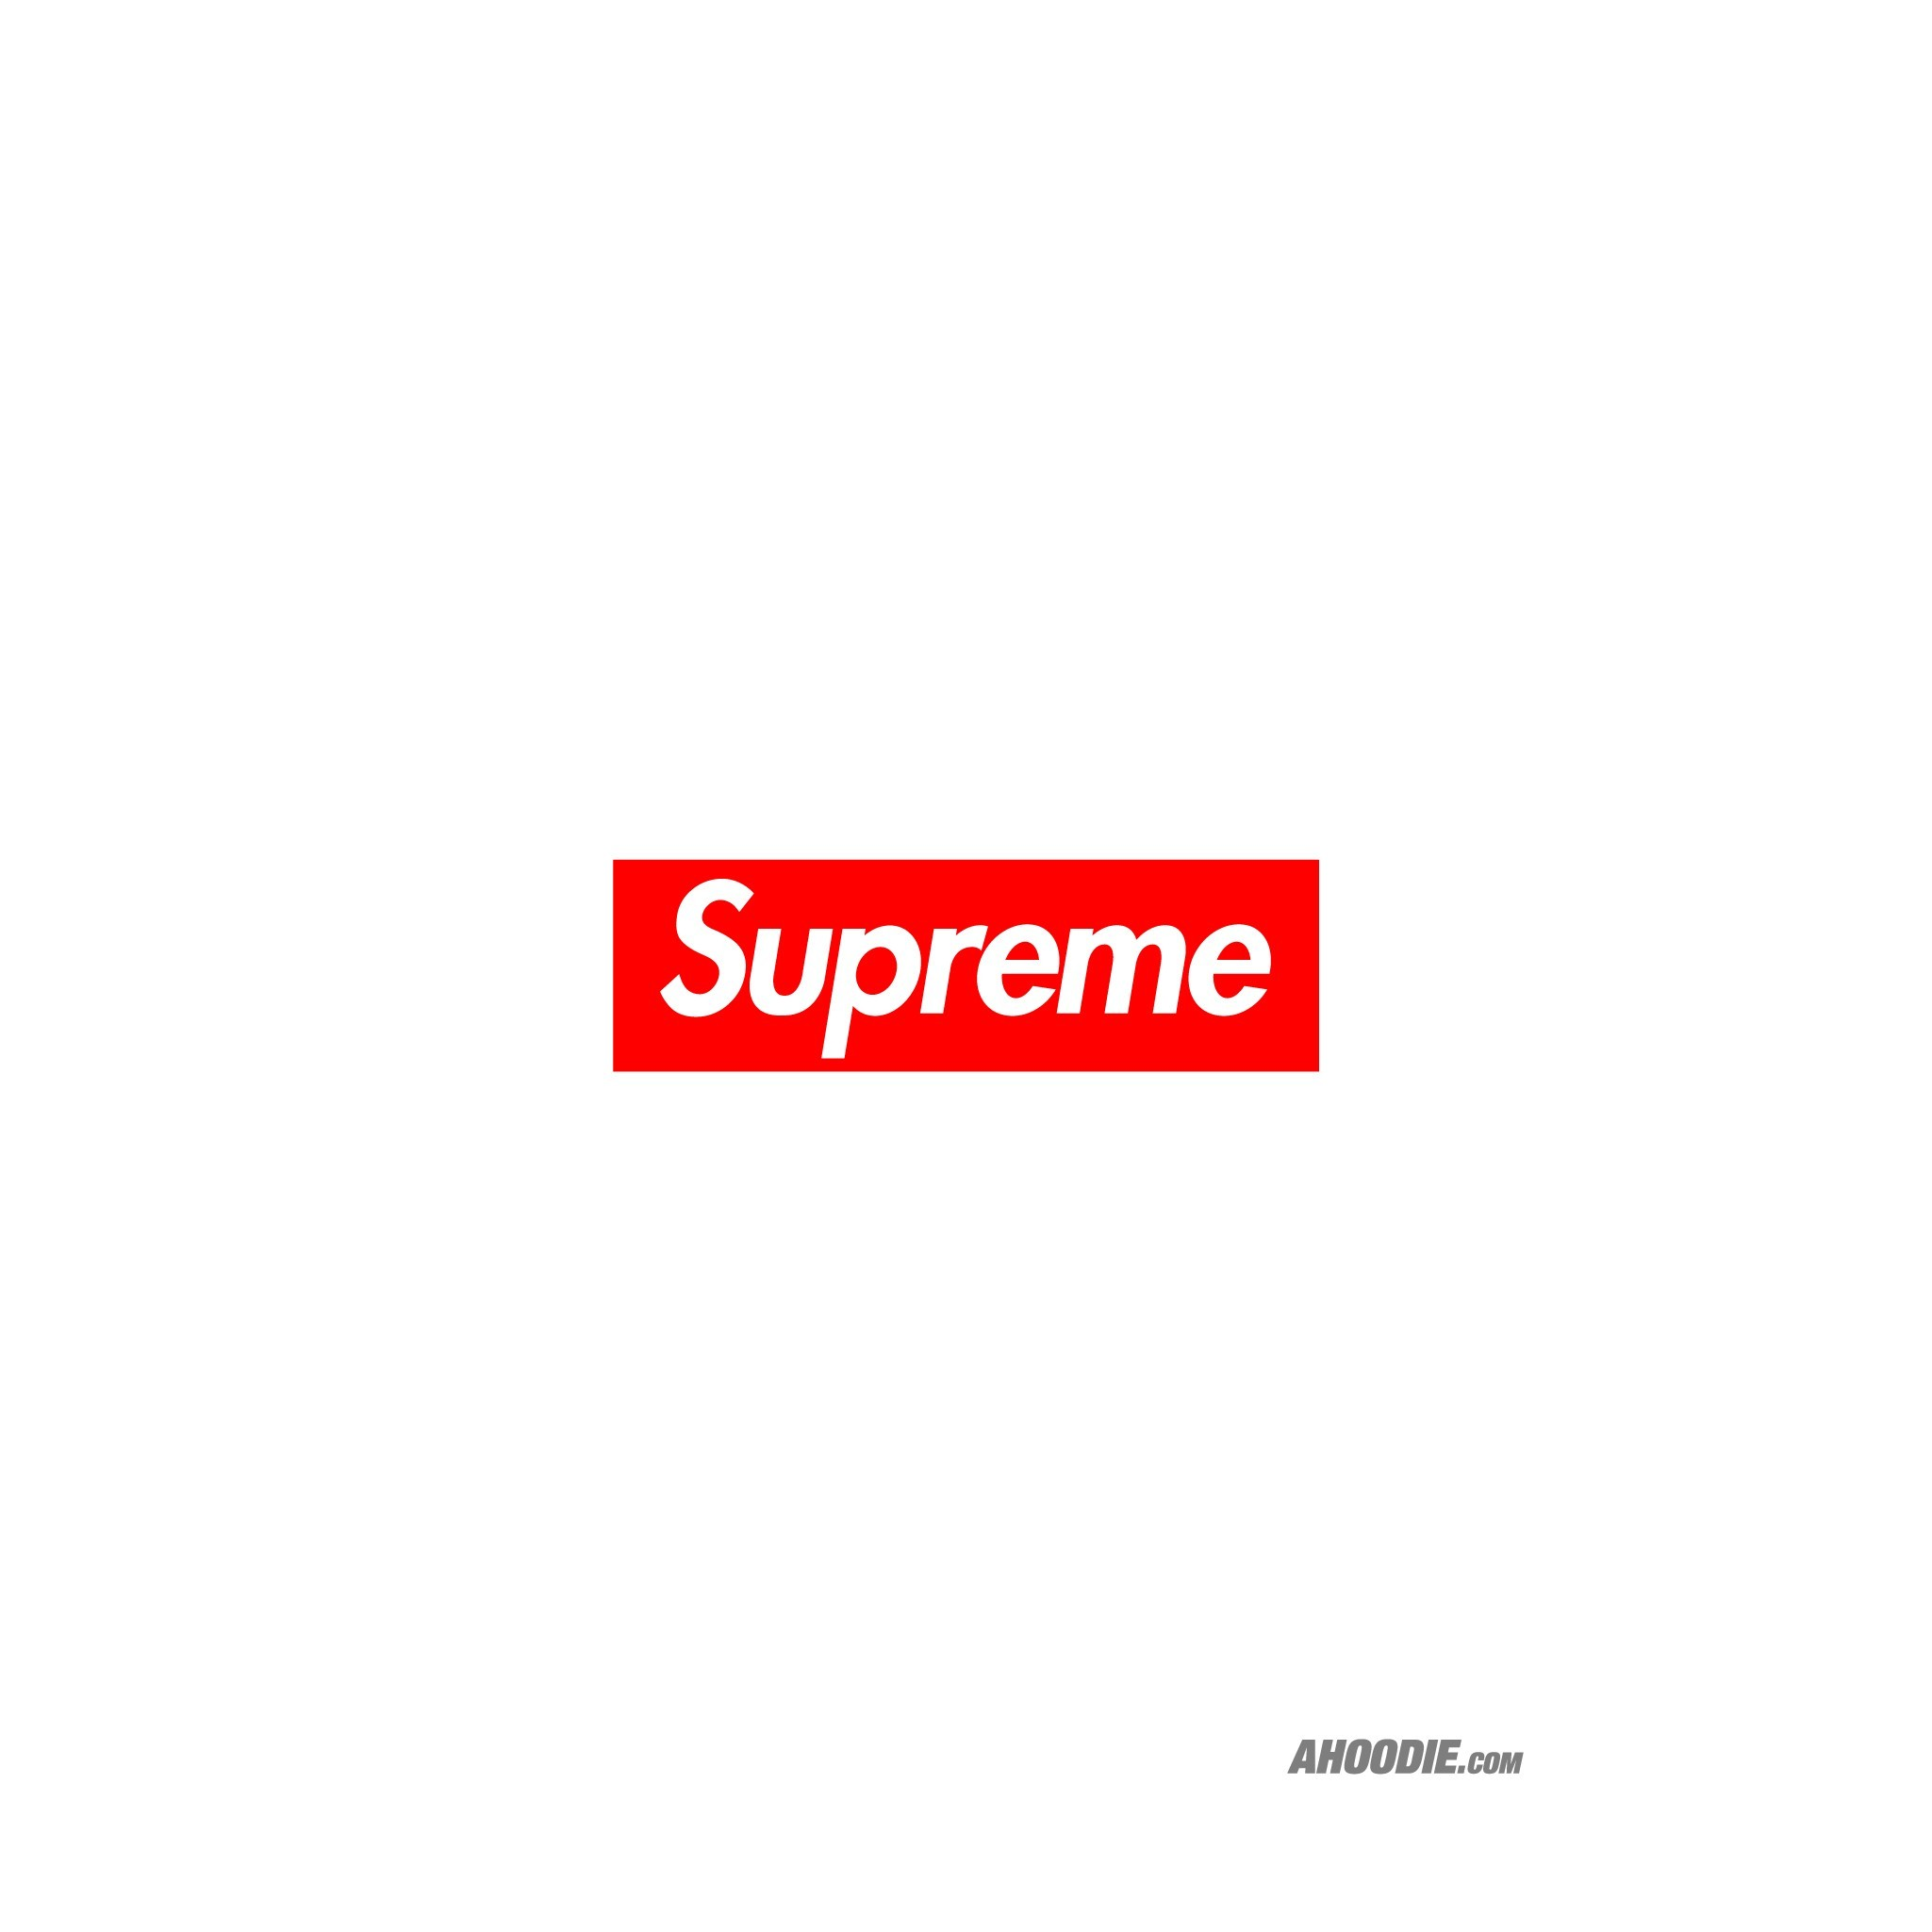 Supreme Wallpaper 73 images 2049x2049